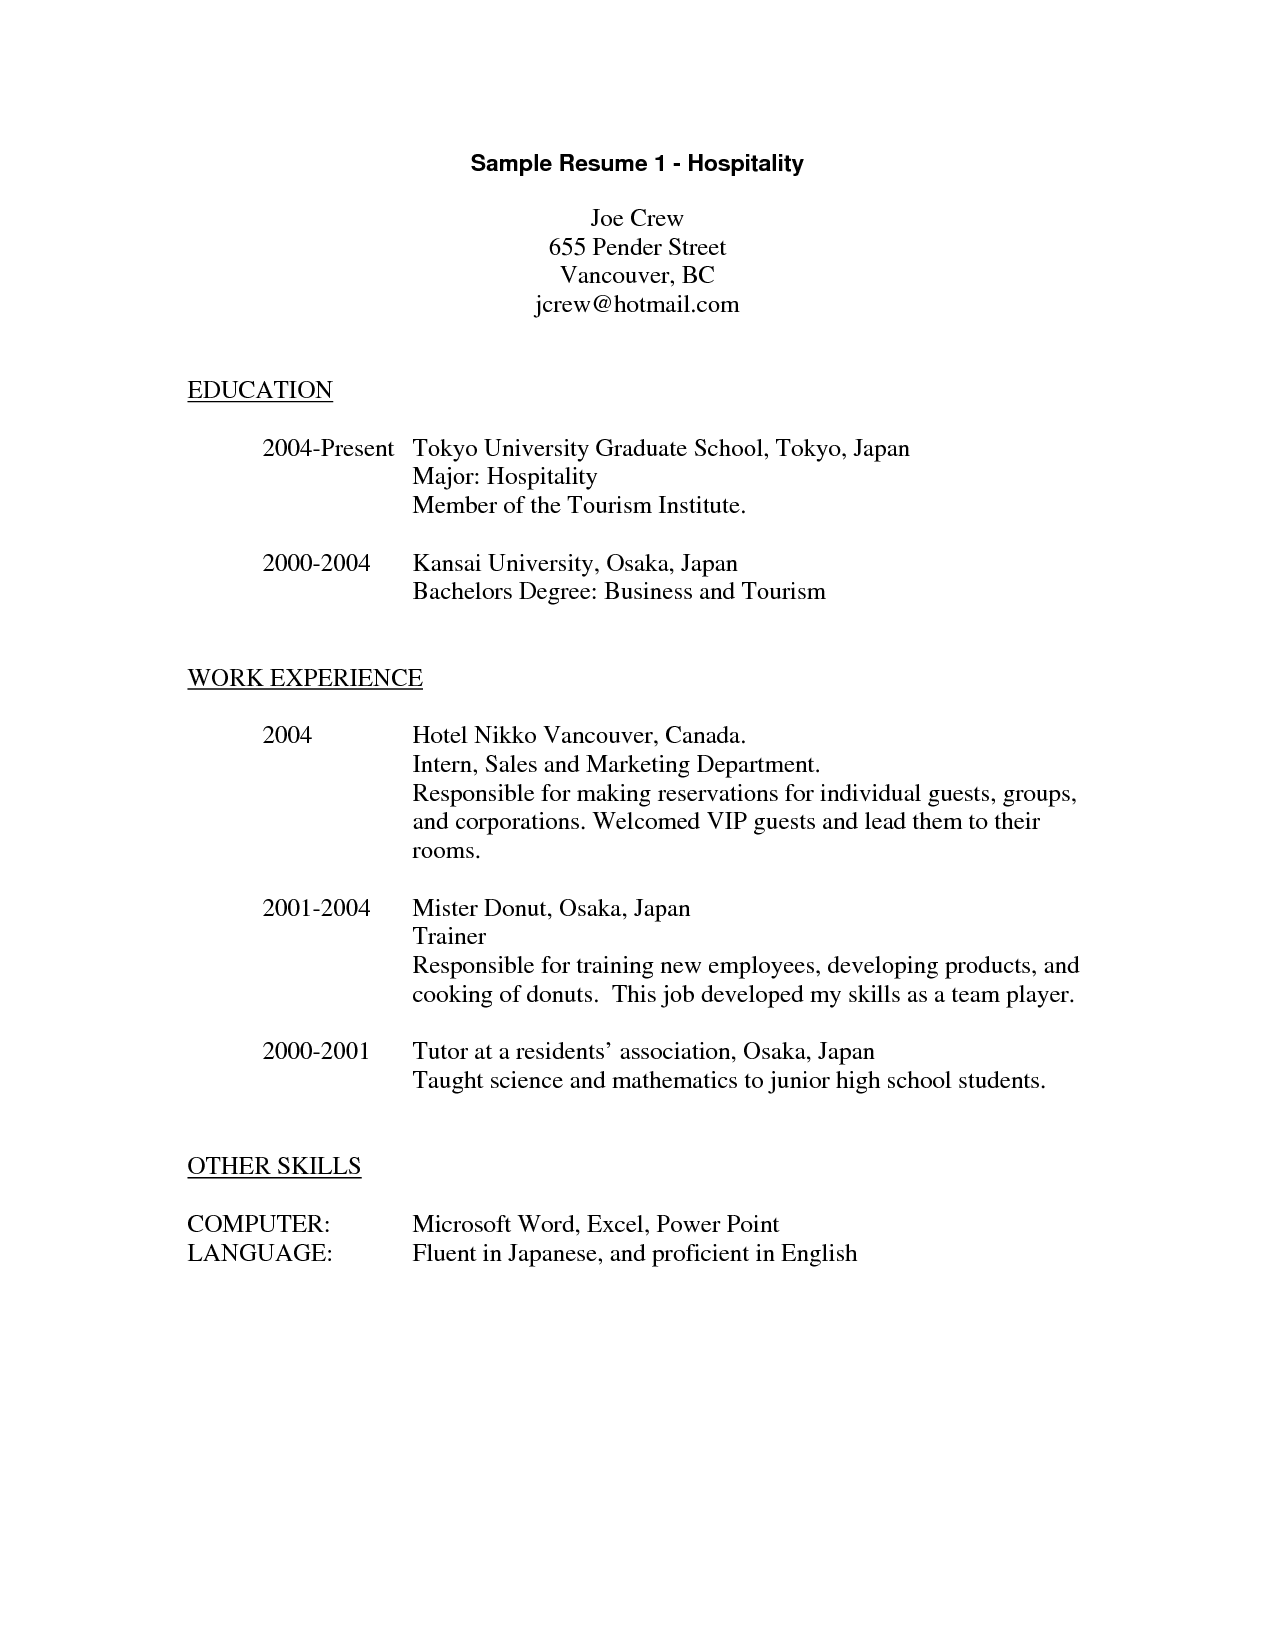 Lovely Sample Resume For Hospitality Industry Sample Resume For Hospitality  Industry Sample Resume For Hospitality Jobs Sample Resume For Hospitality  Management ...